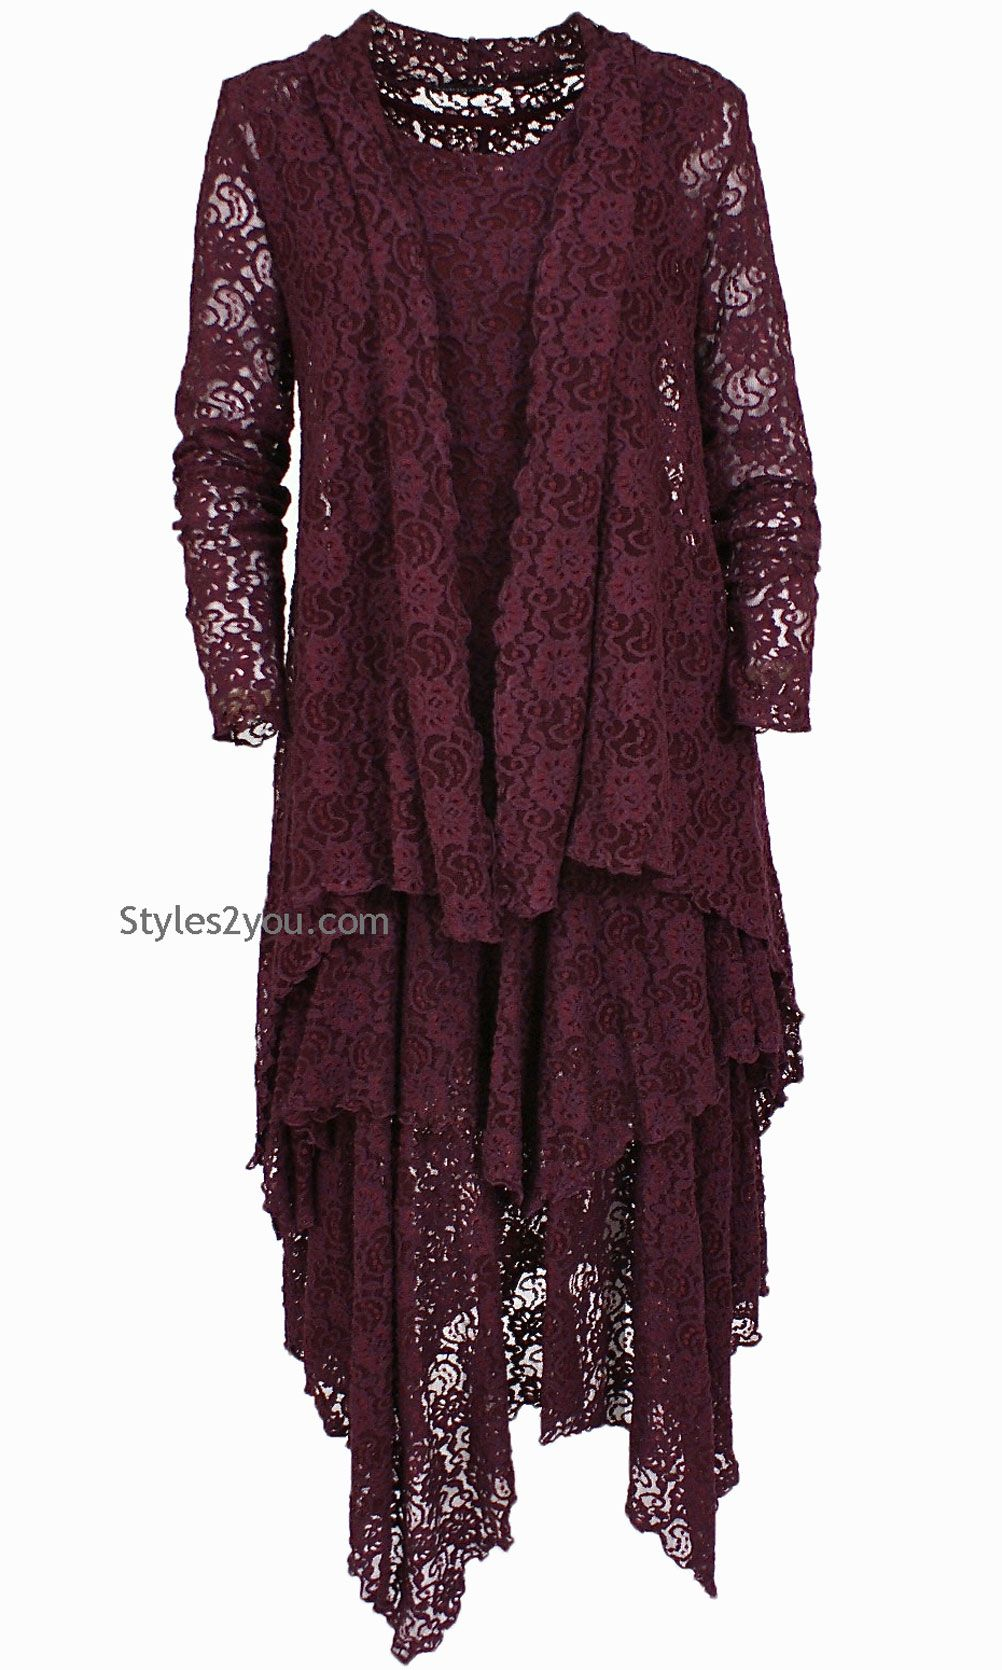 Abigalie Lace Dress In Burgundy | Women's Fashion | Pinterest ...